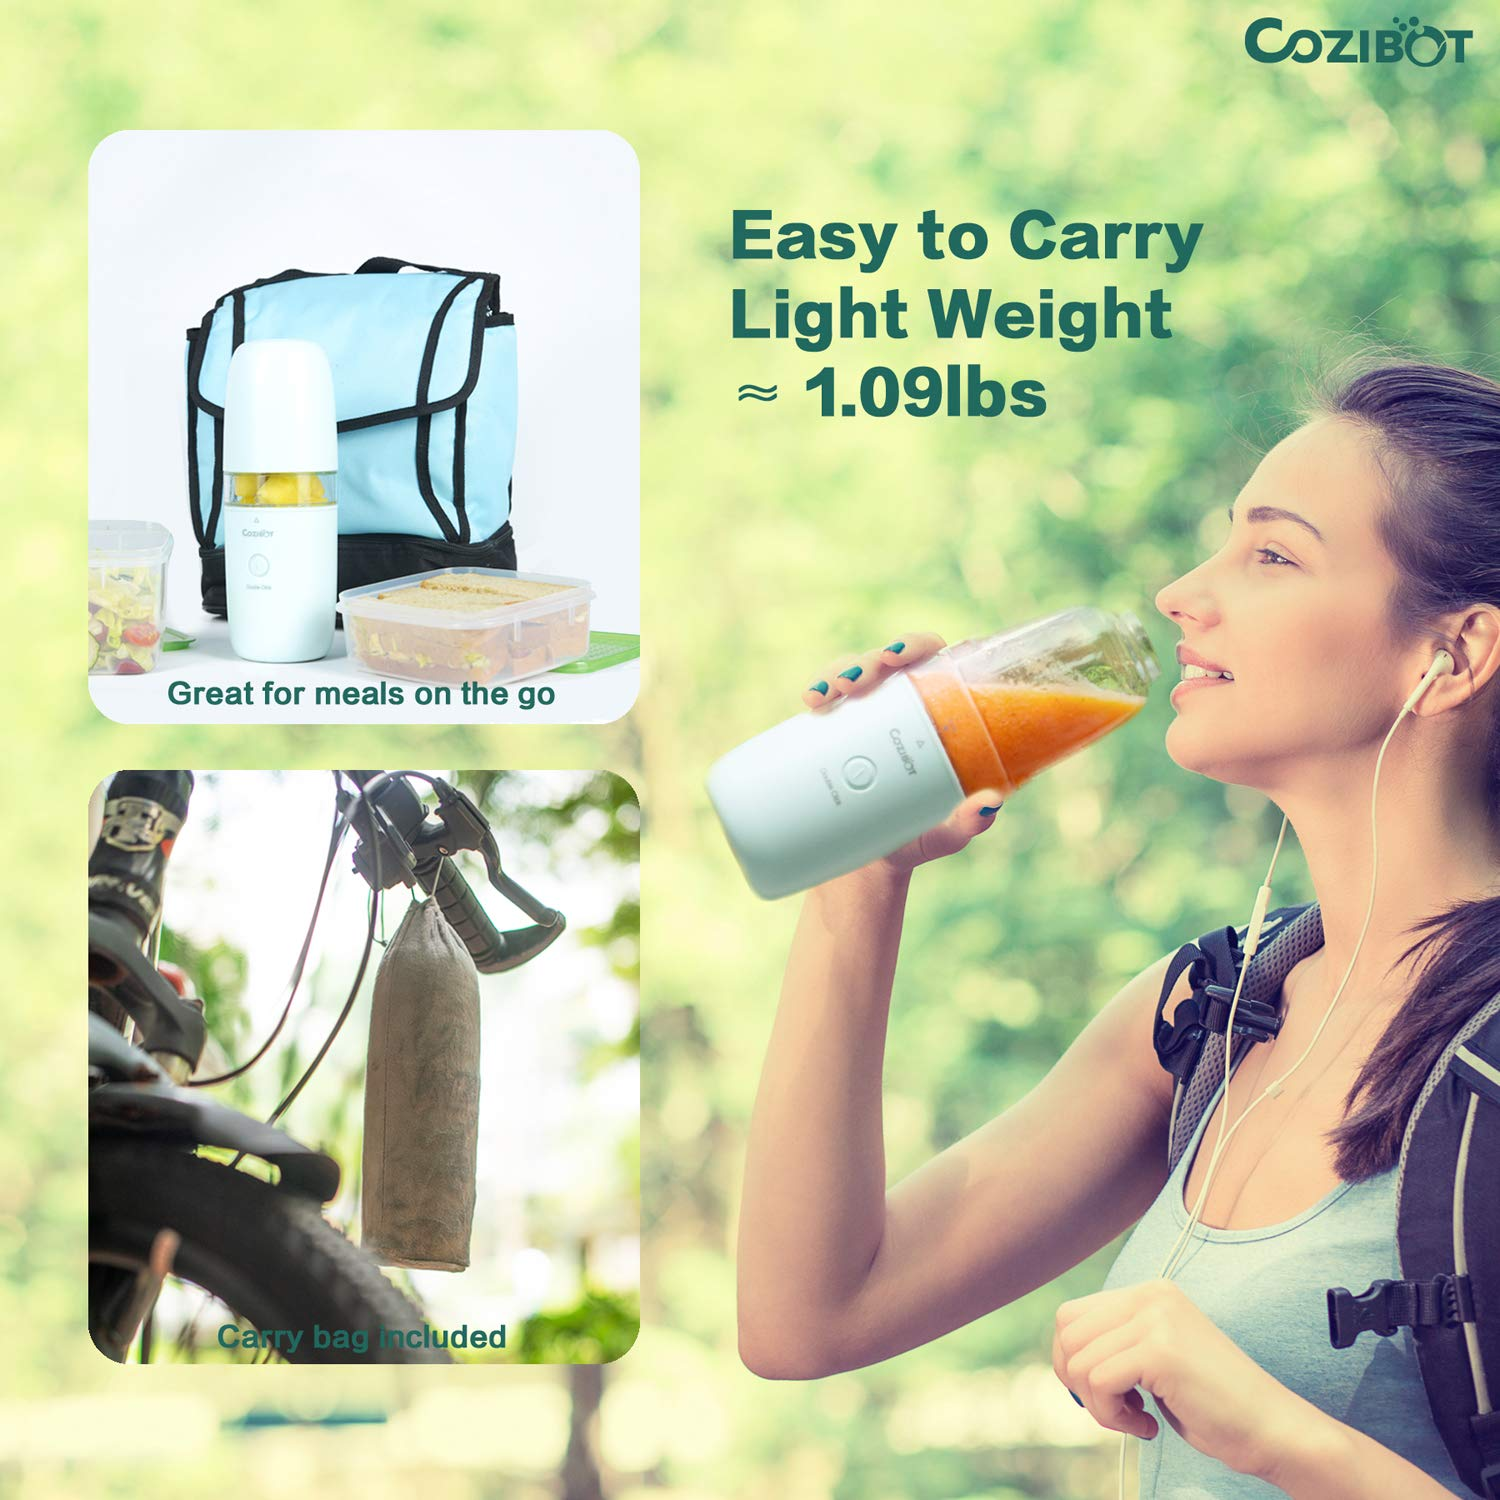 Portable Blender, Cozibot Travel Blender for Smoothies and Shakes, Rechargeable USB Blender for On The Go, Single-Serve Travel Blender, Personal Blender Fruit Juicer Cup with Ice Tray(FDA BPA-Free) by Cozibot (Image #6)